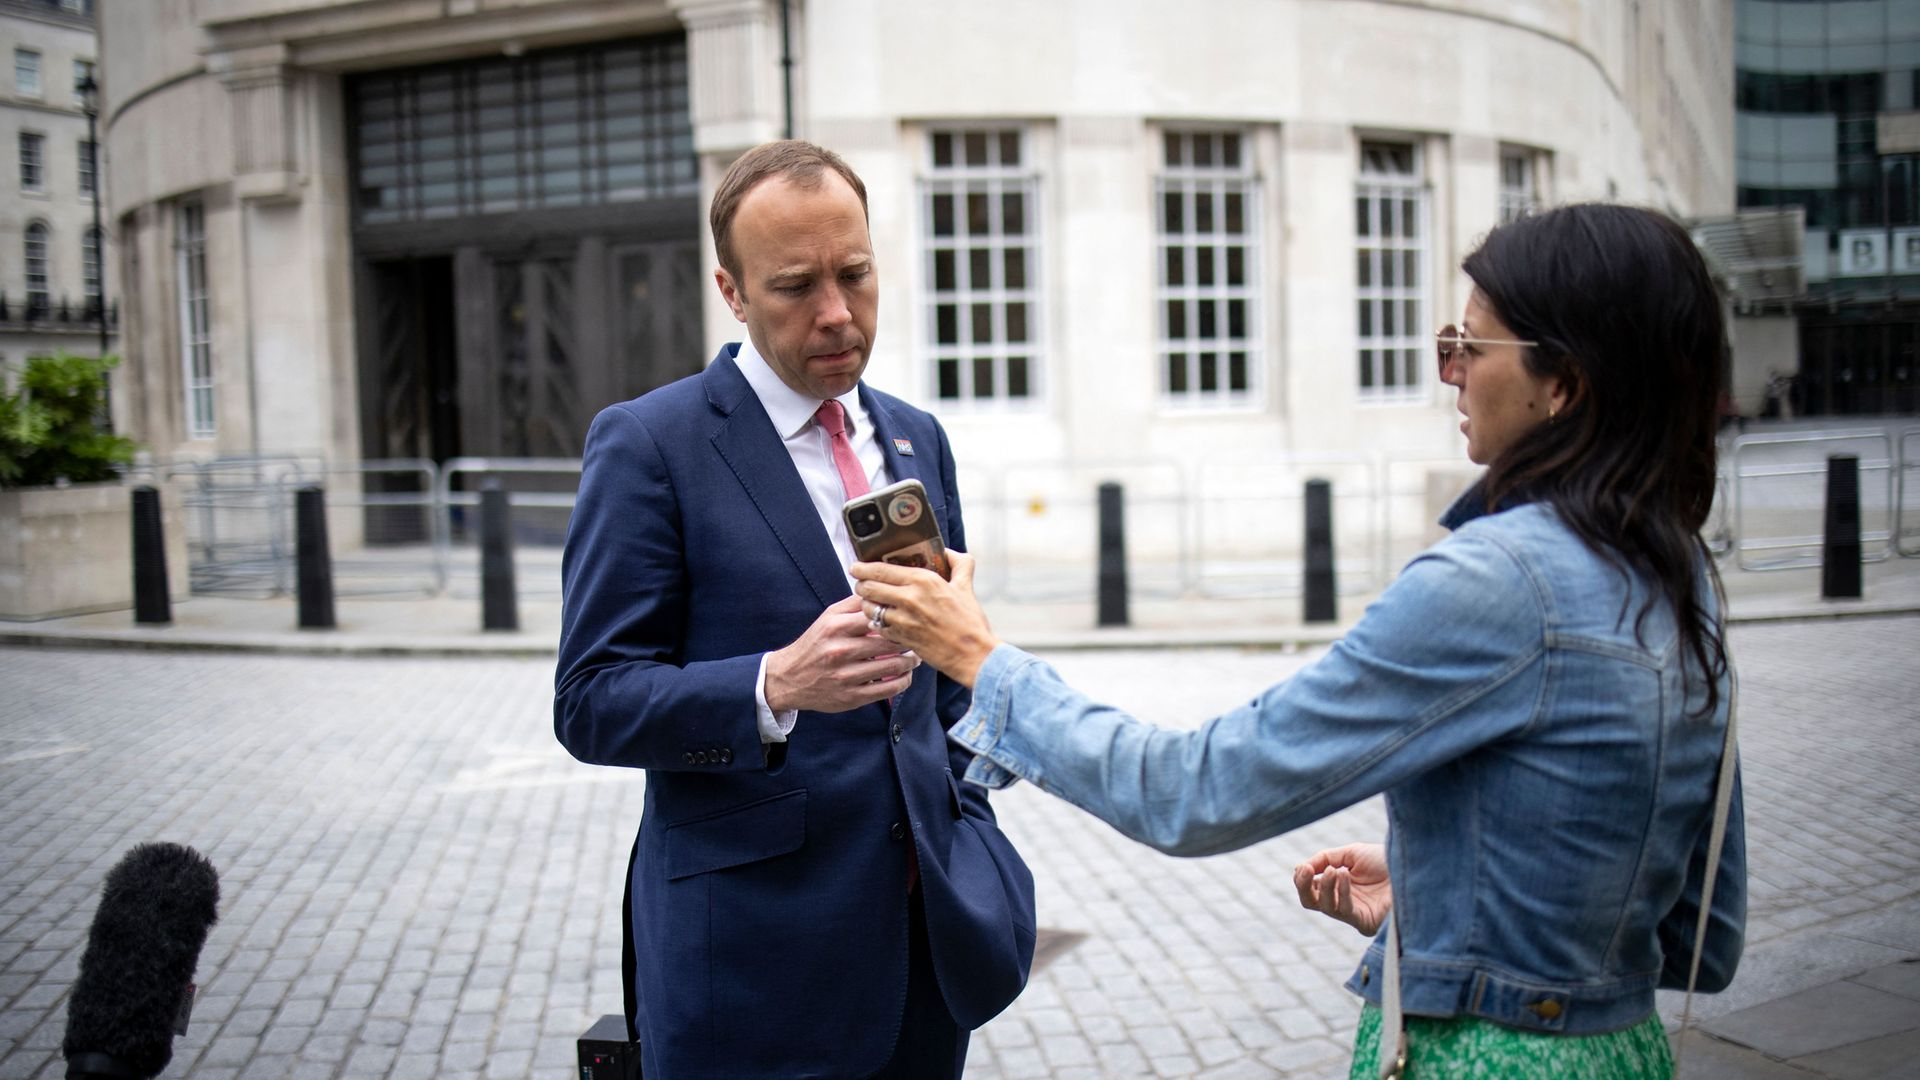 WhatsUp? Matt Hancock looks at the phone of his aide Gina Coladangelo as they leave the BBC in central London in June. Weeks later, news of the pair's affair - and Hancock's use of Gmail and WhatsApp for government business - emerged - Credit: AFP via Getty Images